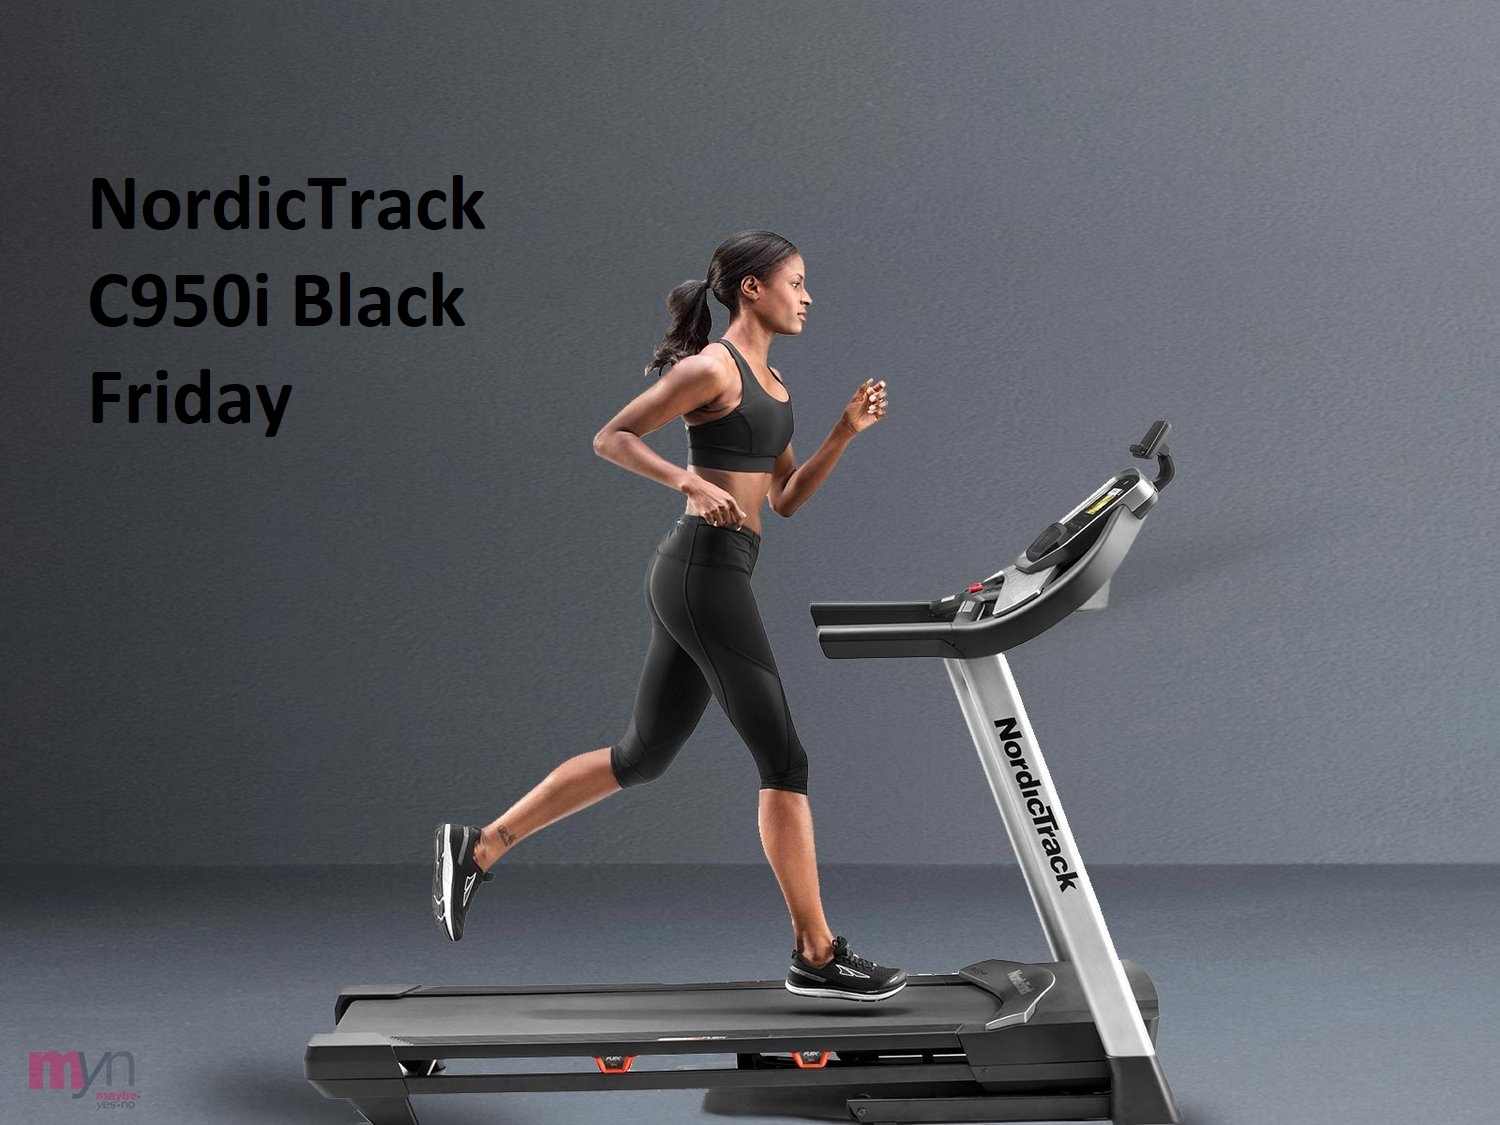 NordicTrack C950i Black Friday